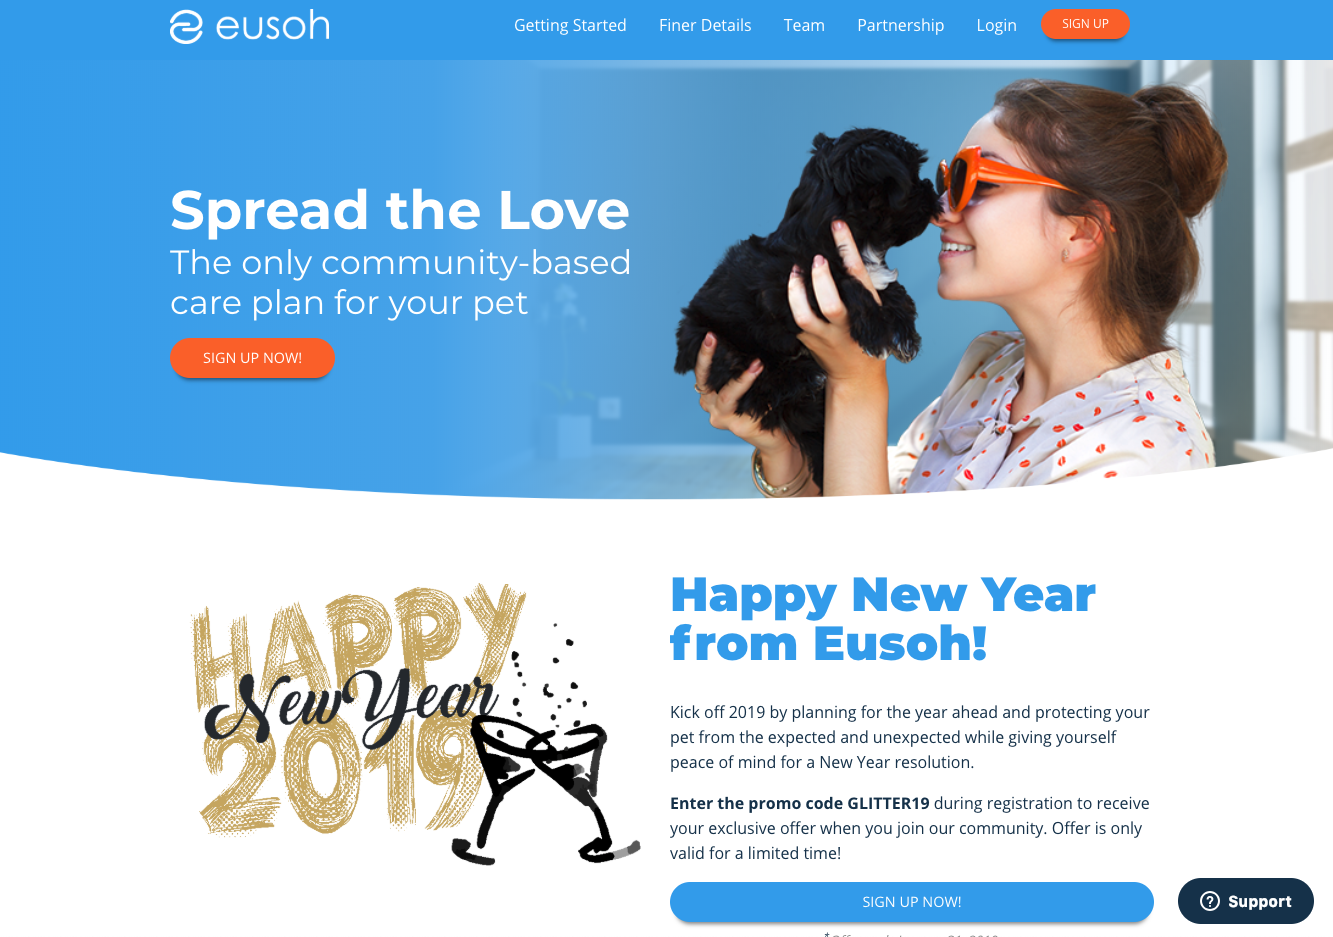 eusoh - Insurance is complicated, costly, and confusing, so we've developed a simpler, cheaper, and transparent alternative that helps loving pet owners share the cost of accidents, diseases, and preventative care within their communities.Eusoh(you-so) is different, let us prove it!